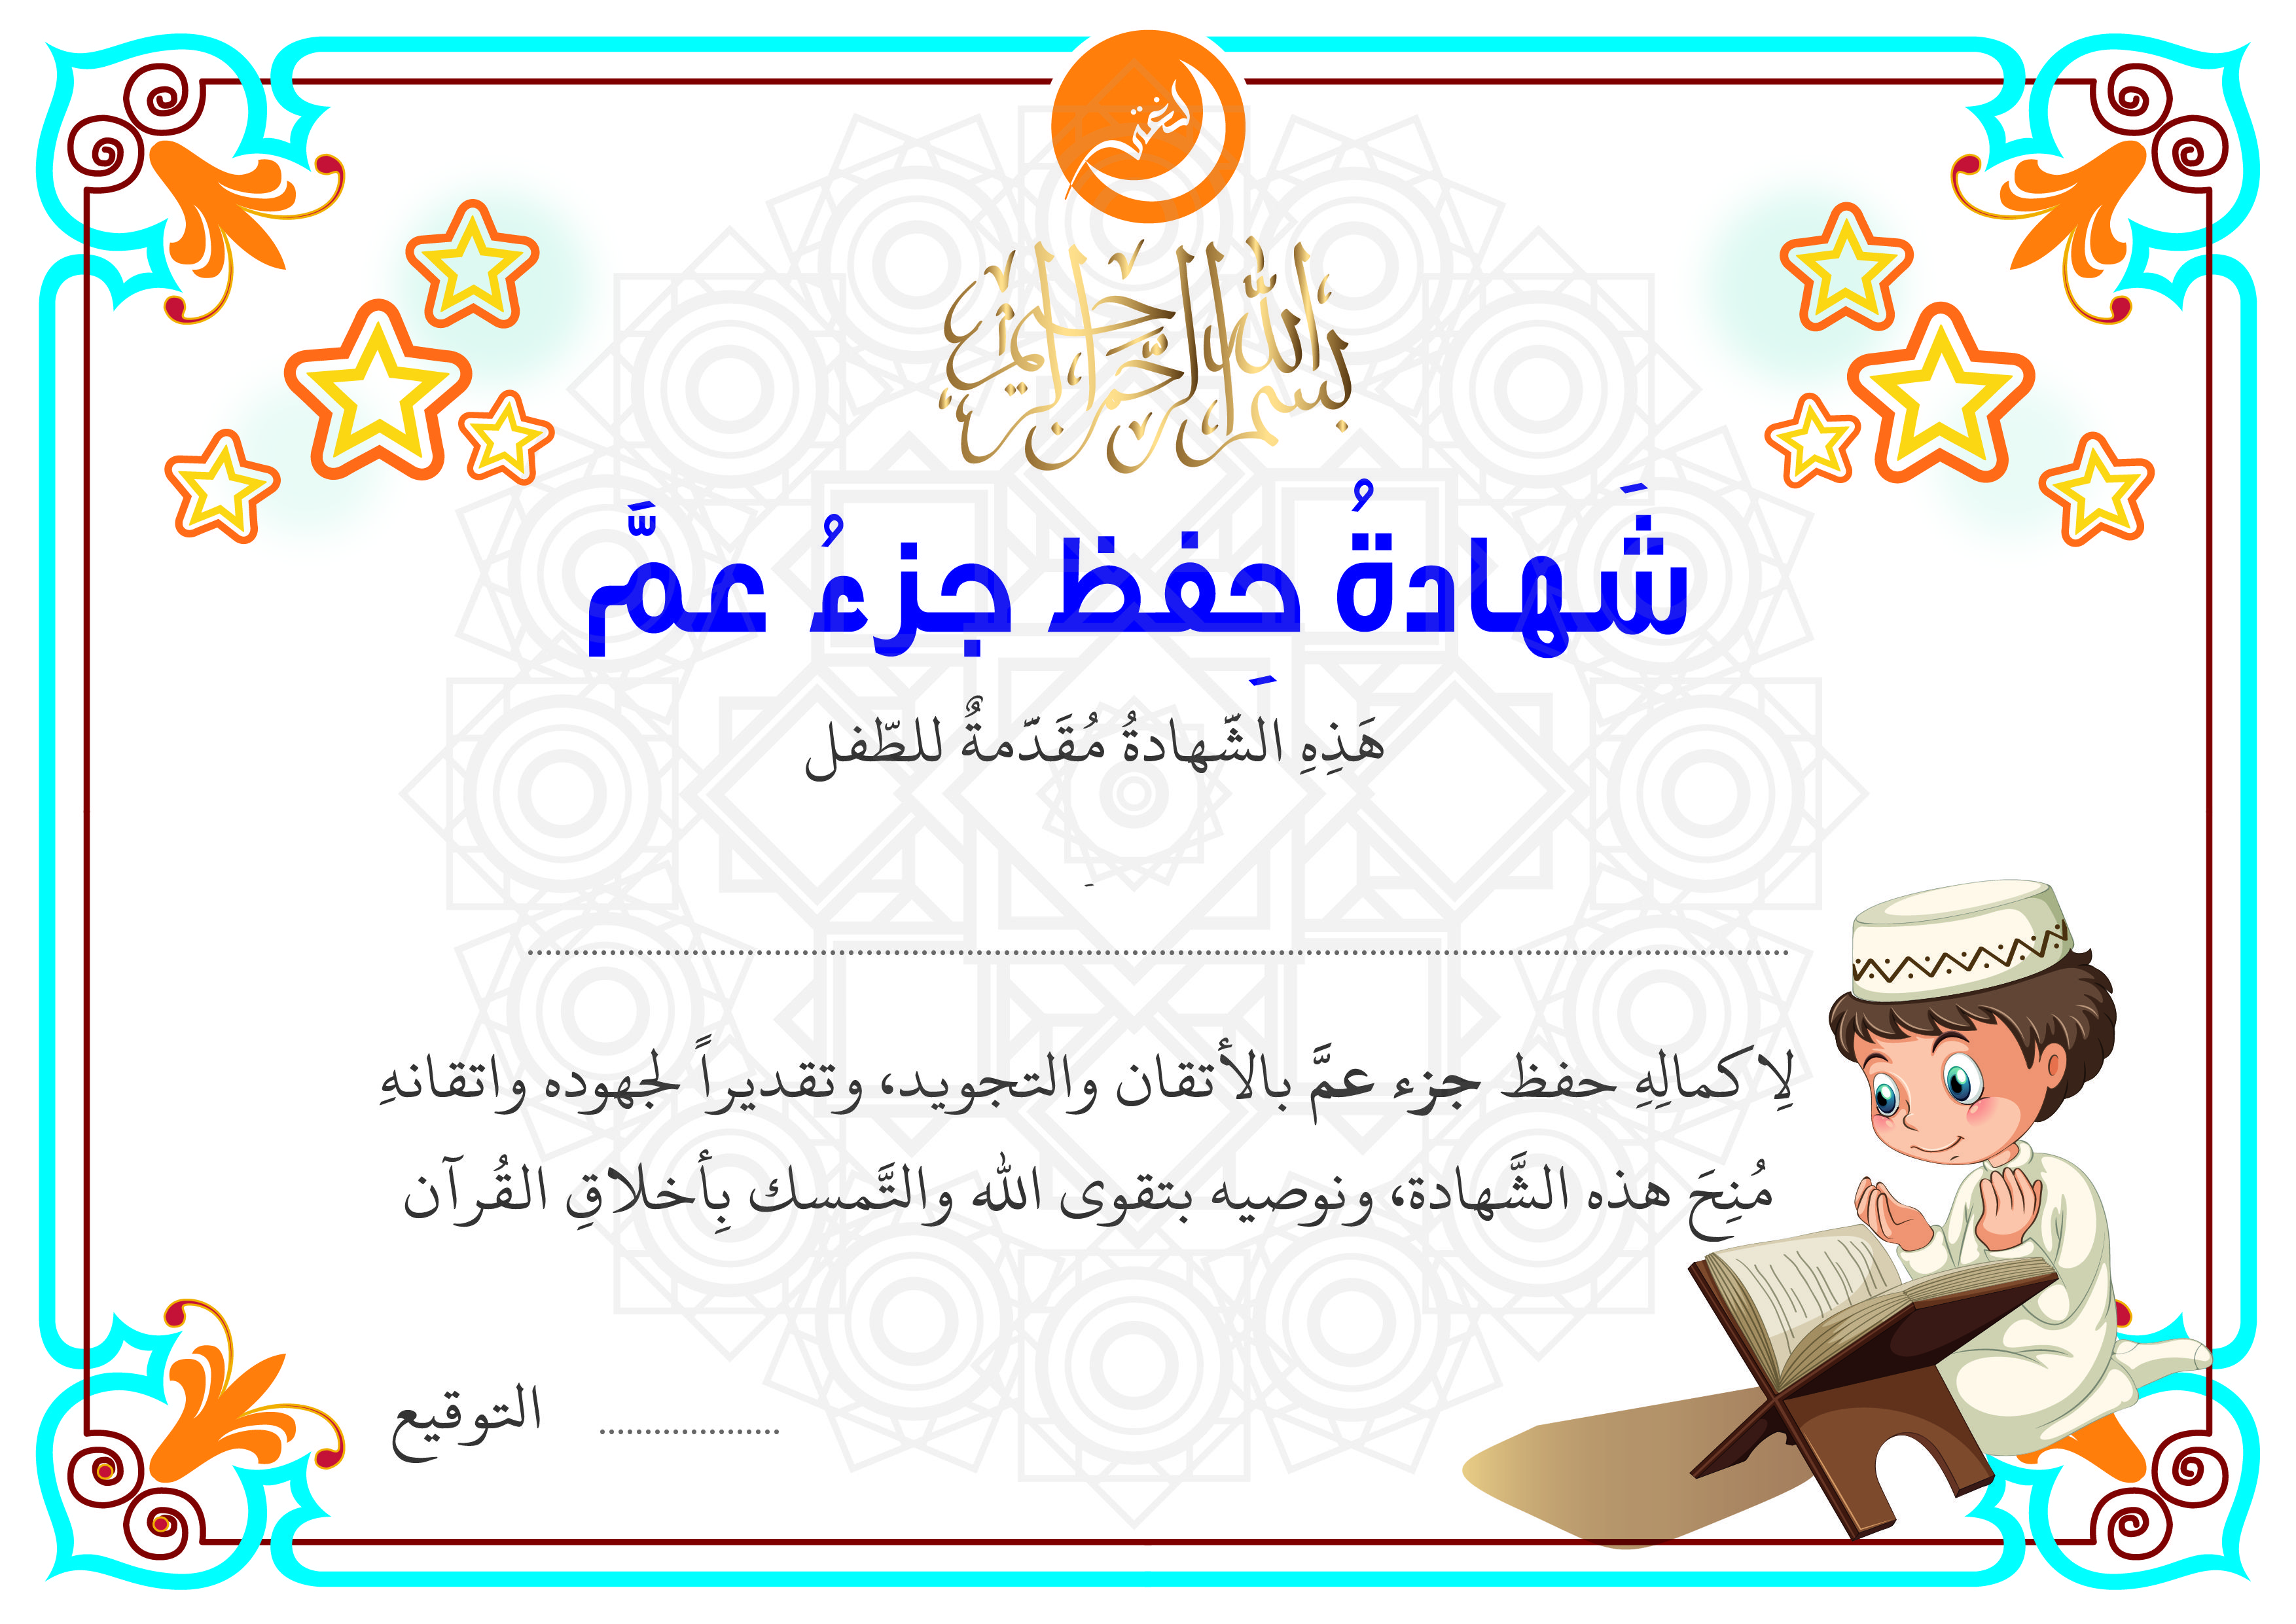 Certificate Of Memorizing Juz Amma For Boys Free Downloadable From Lugati How To Memorize Things Islamic Kids Activities Muslim Kids Activities